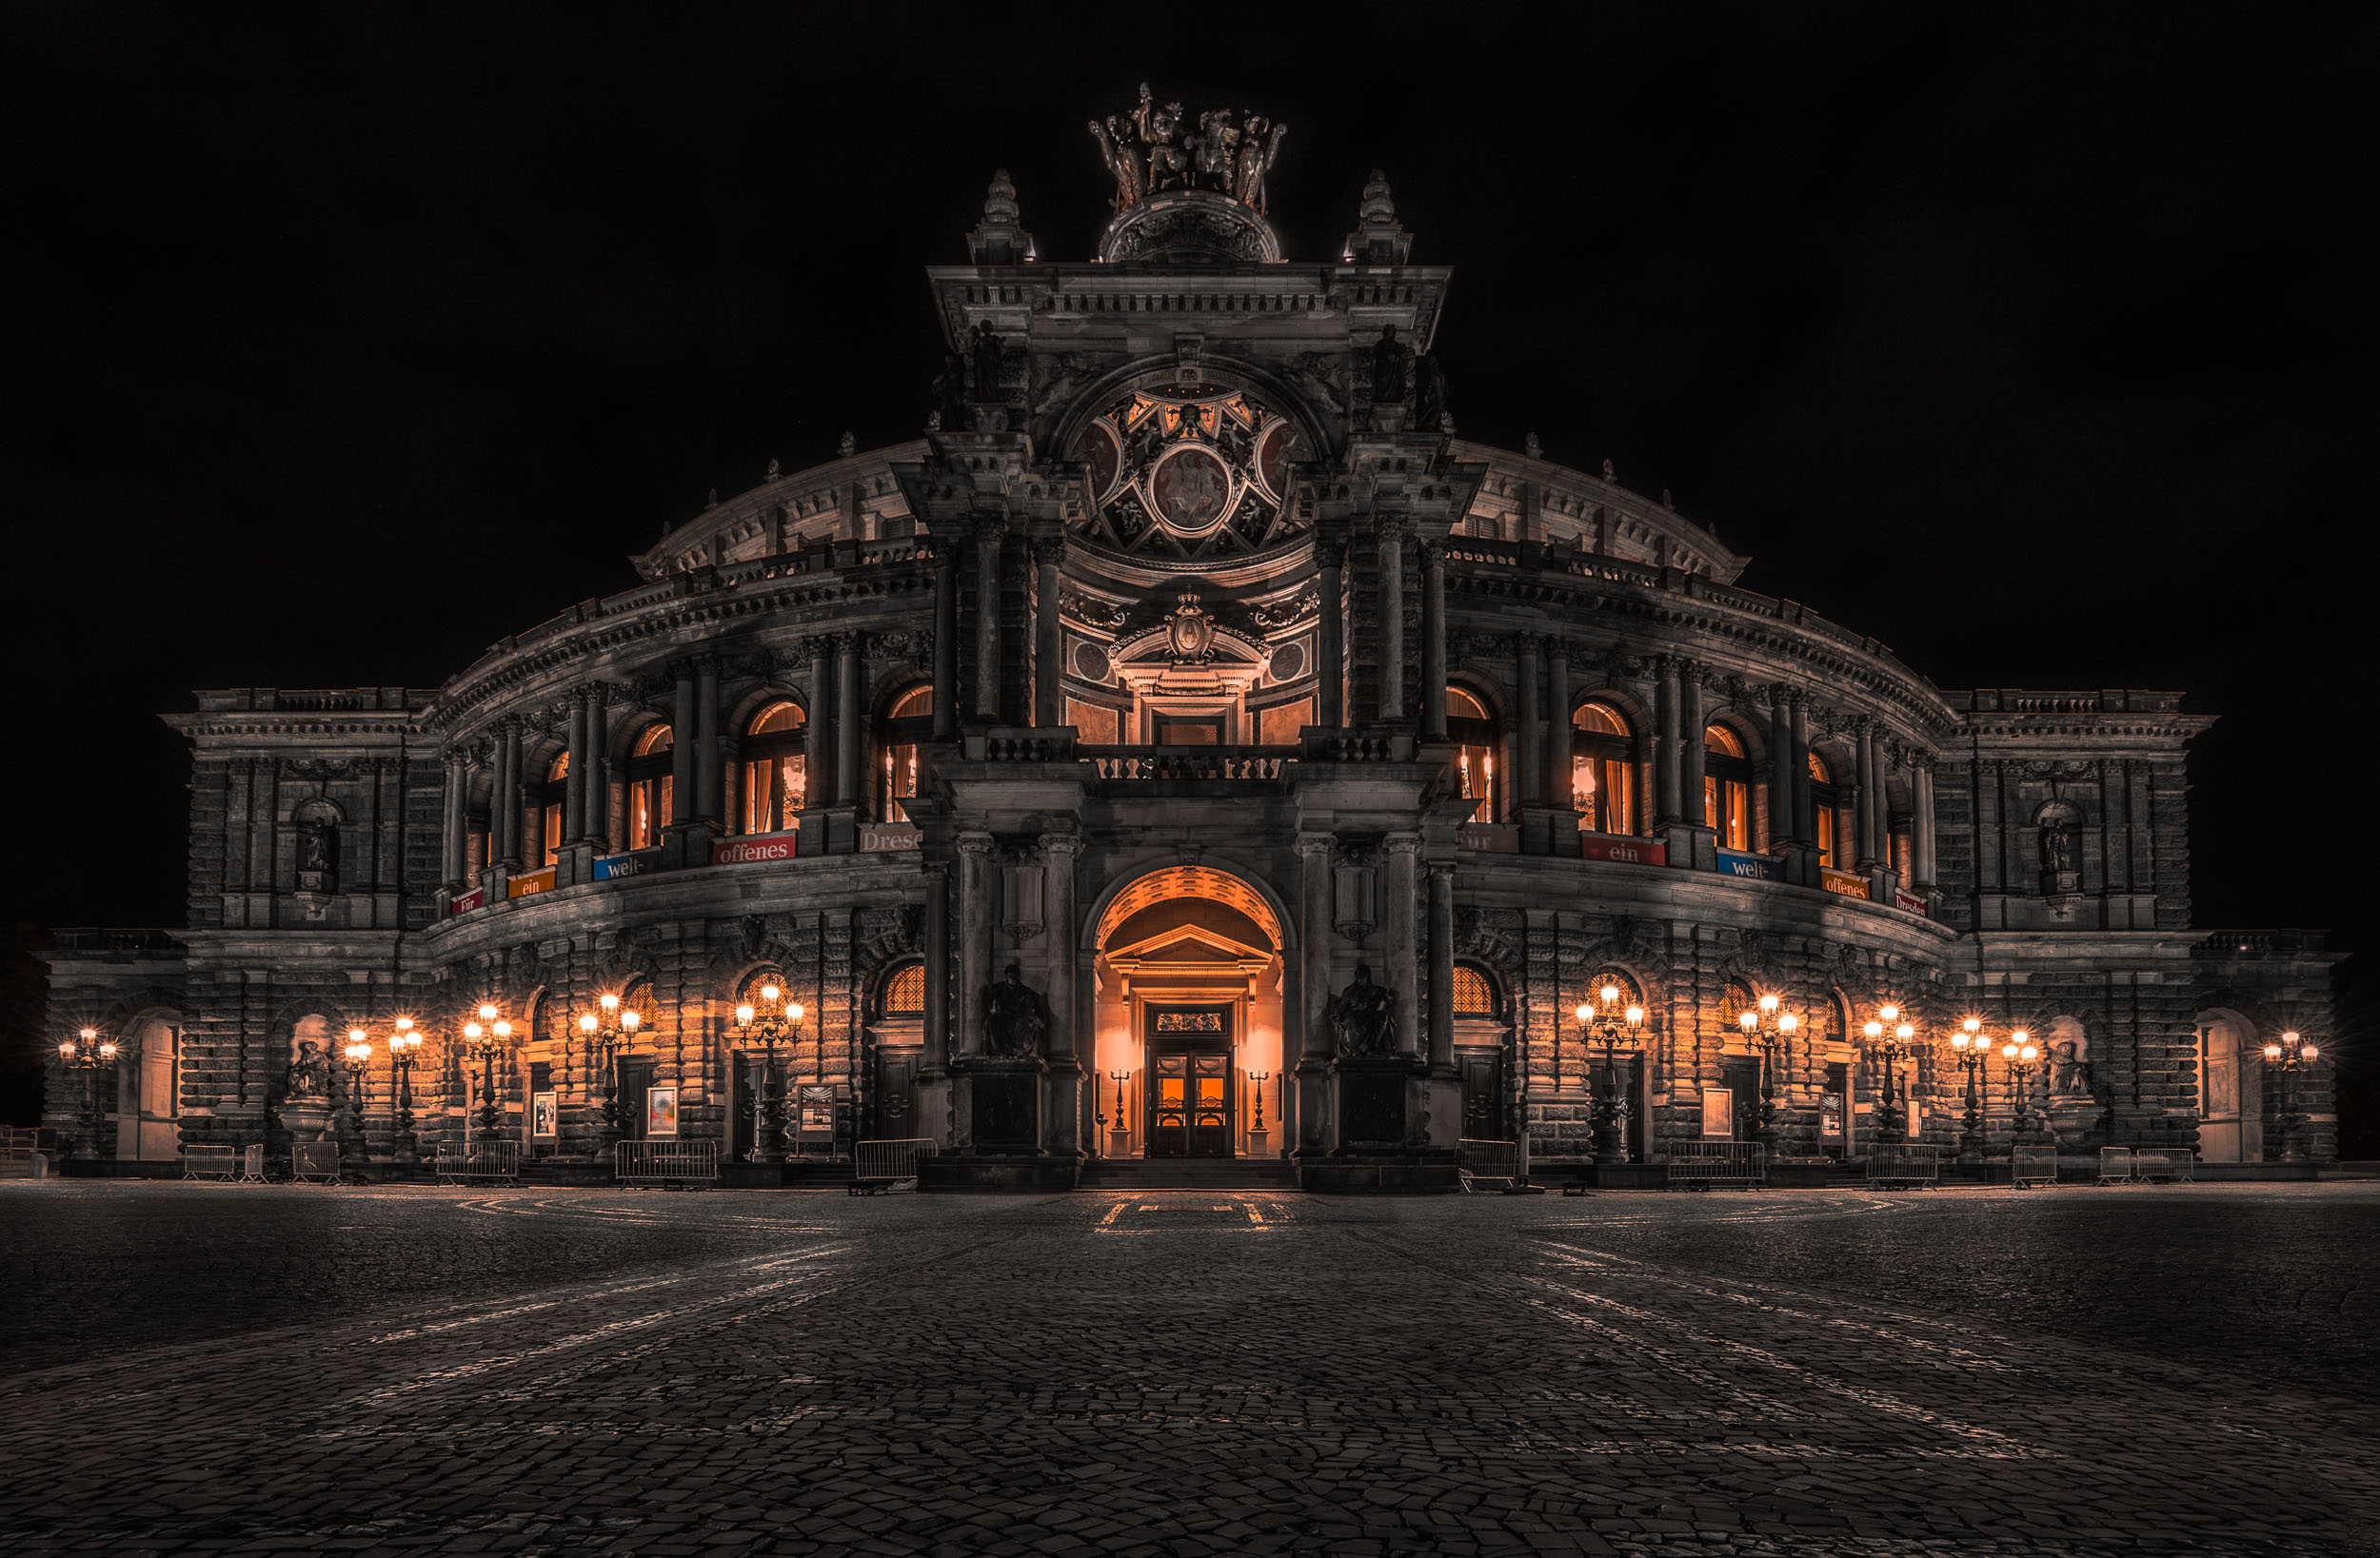 Semper Opera - Architecture in Dresden, Germany - City Photography